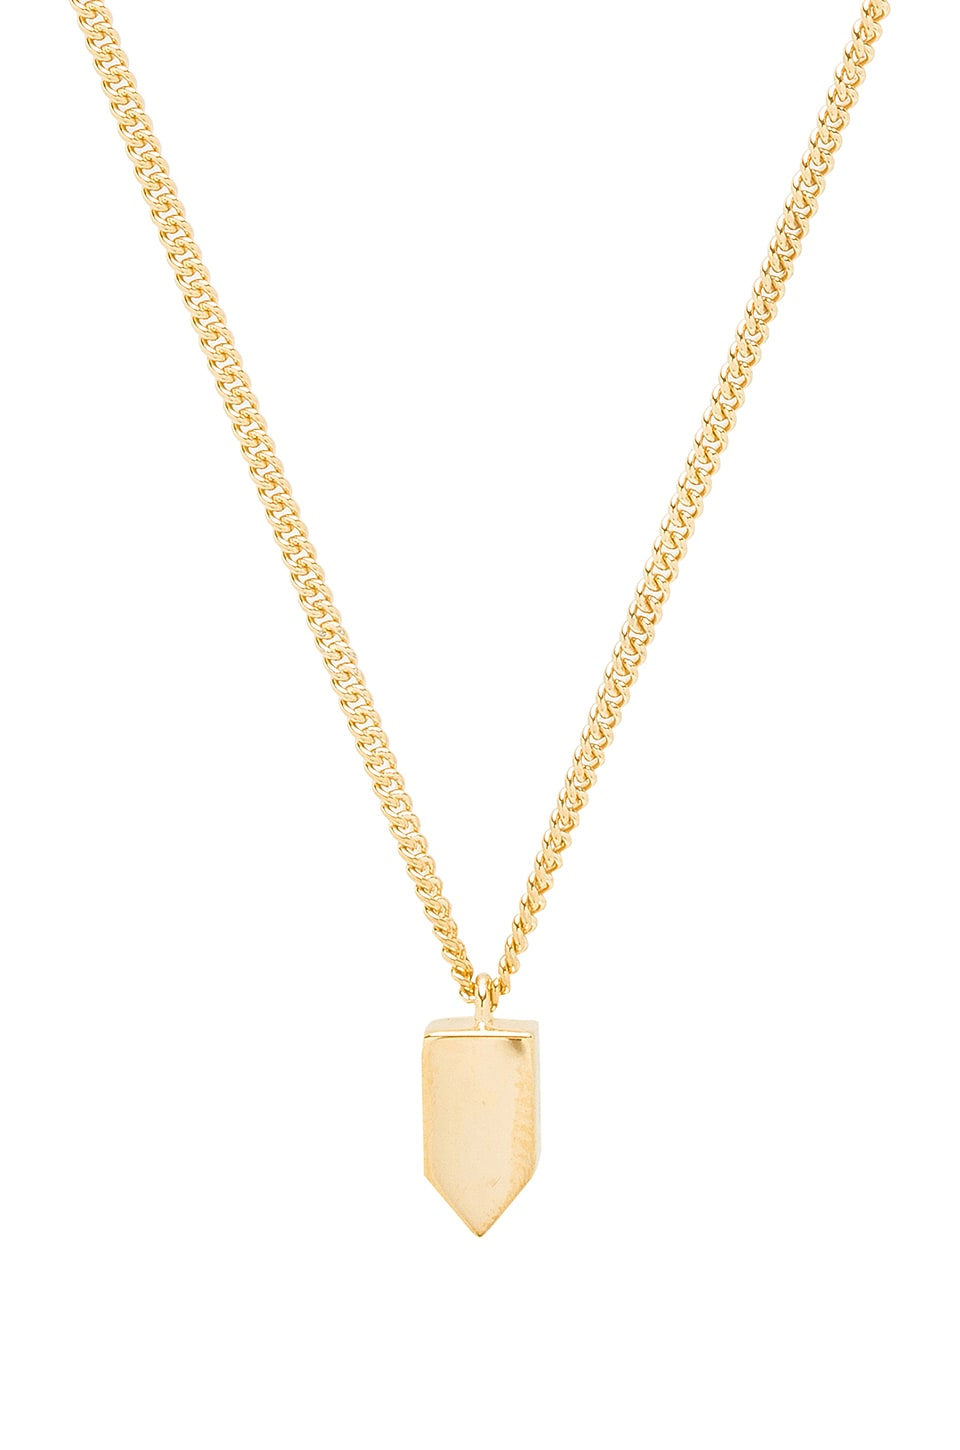 p a men c bristol apc necklace gold